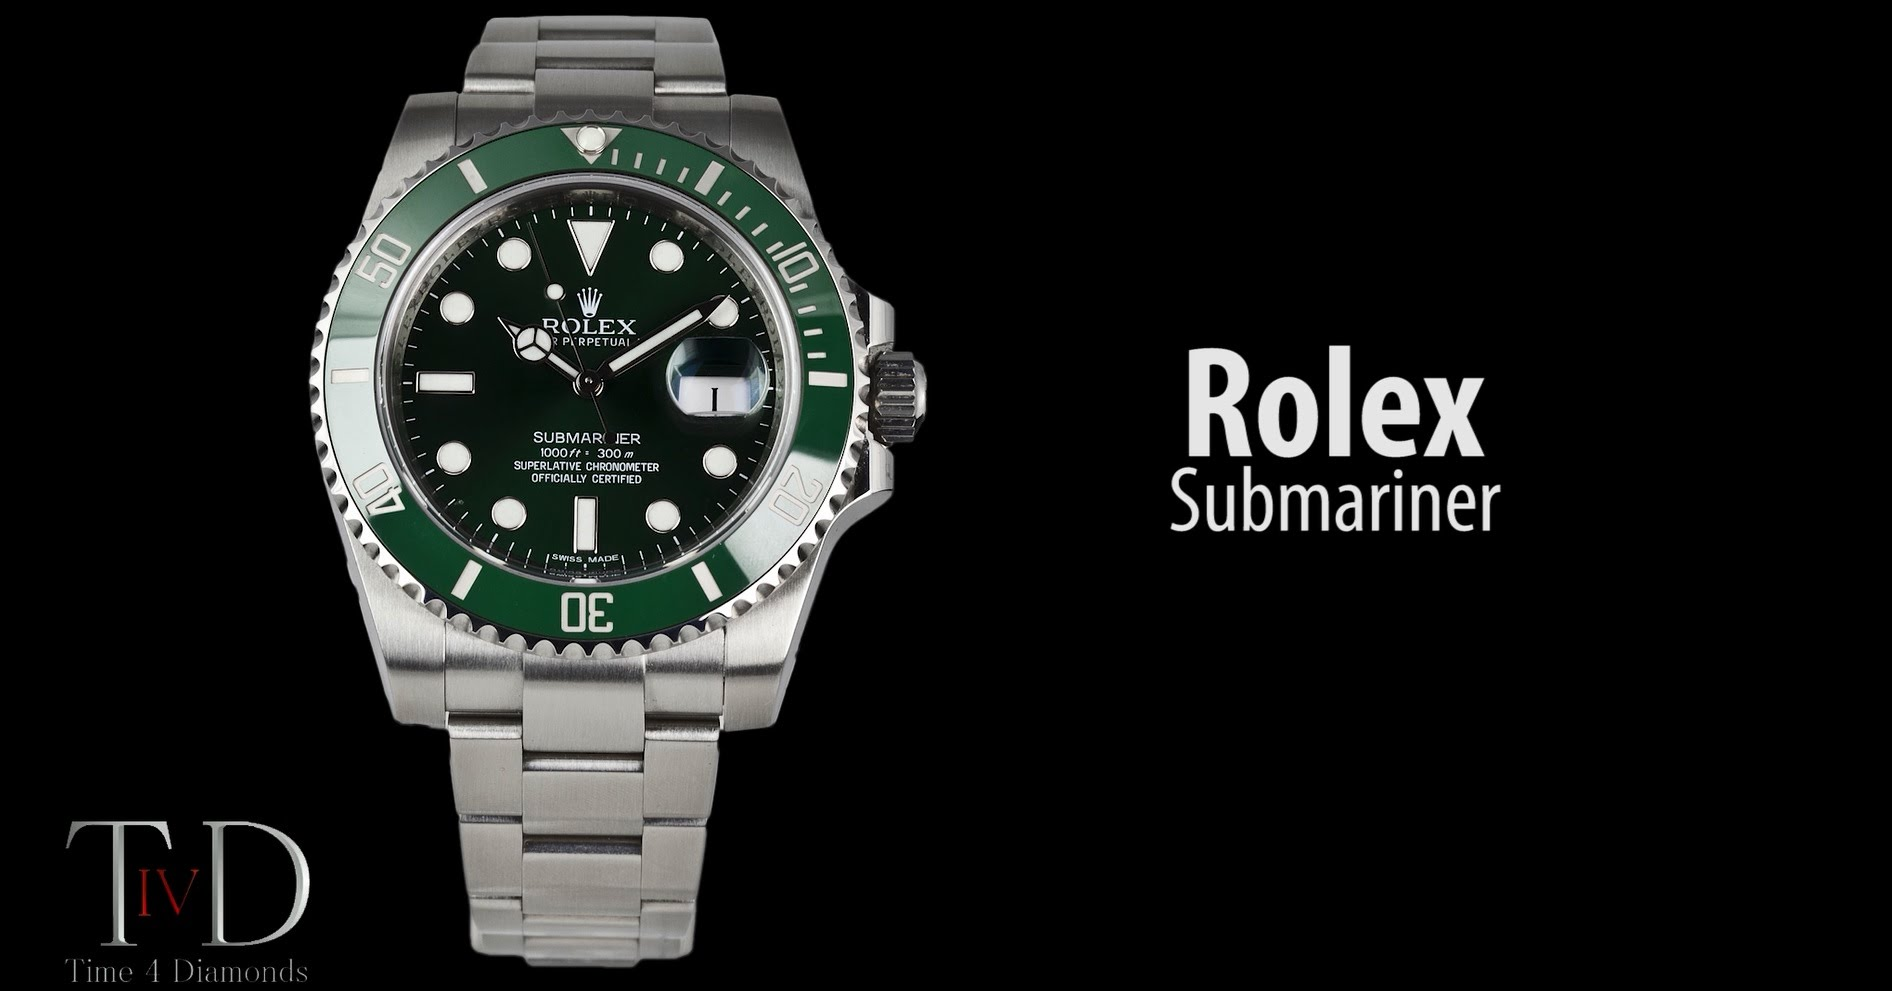 Rolex Submariner Green Replica Watches